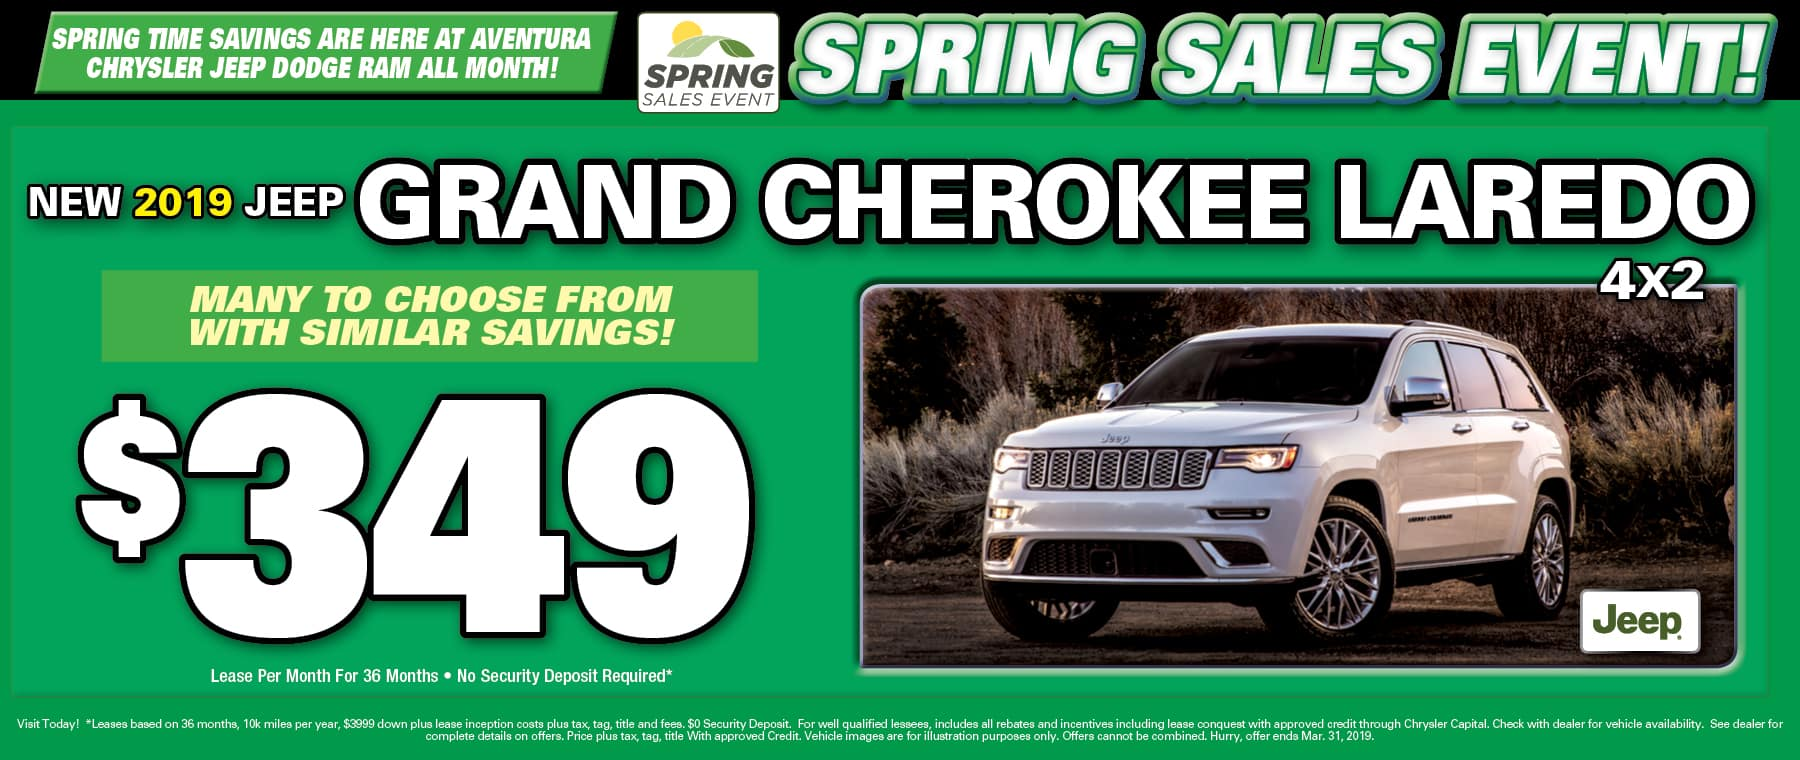 New 2019 Jeep Grand Cherokee! - Aventura Jeep!